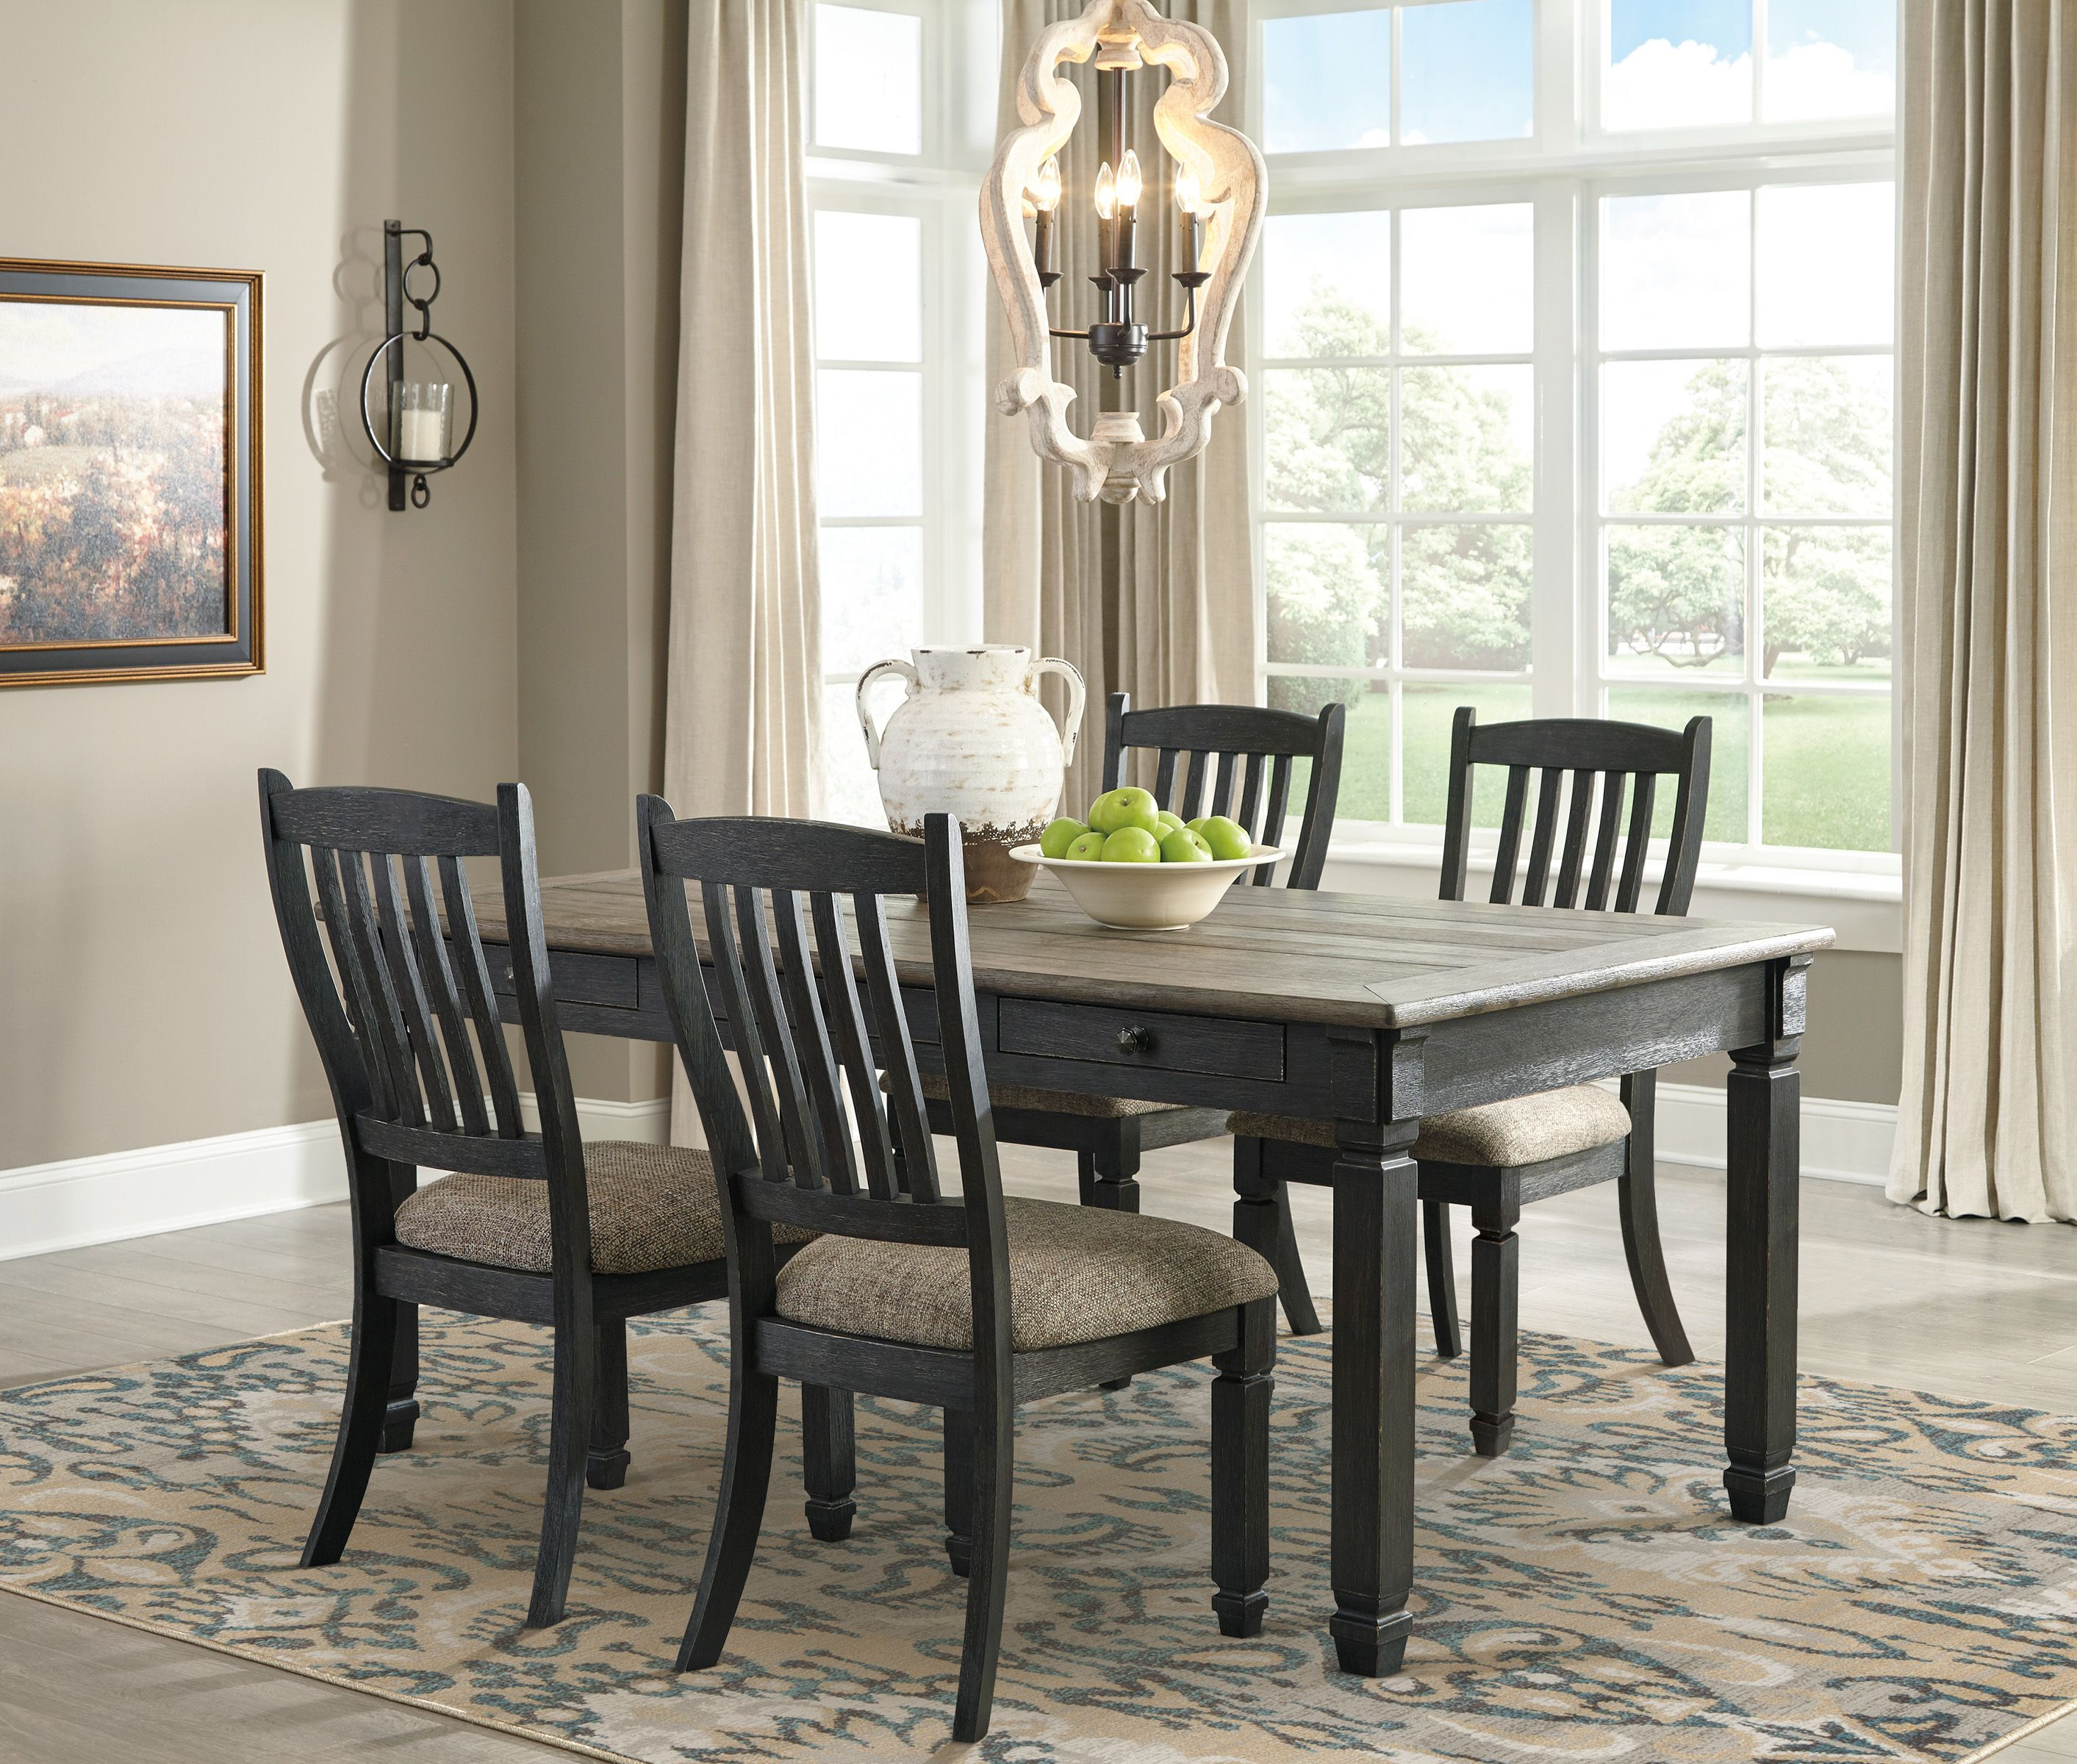 Tyler Creek 5 Piece Dining Room Rectangular dining room